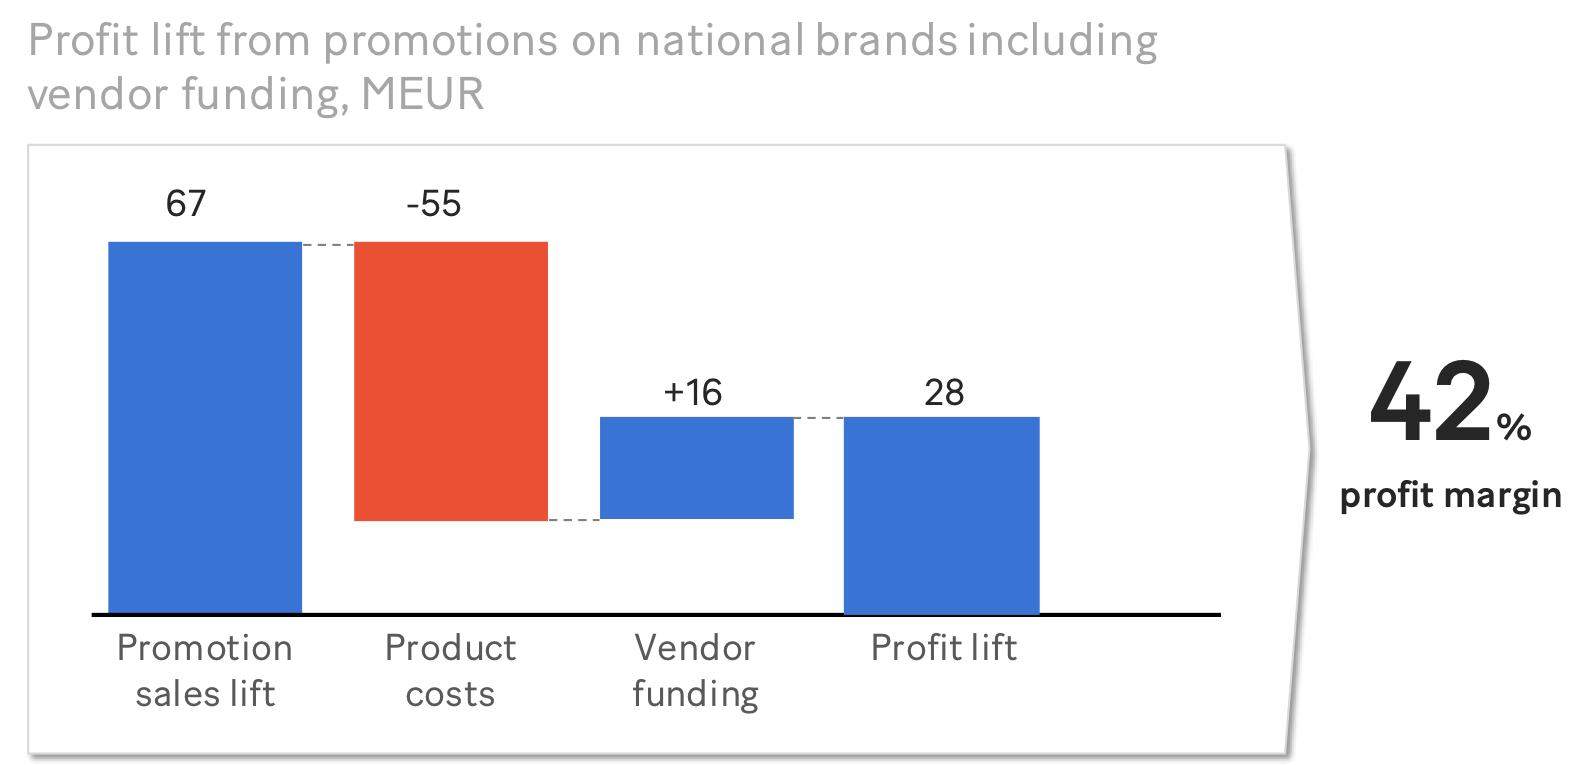 Promotion sales lift national brands (MEUR), supplier funding included – disguised example